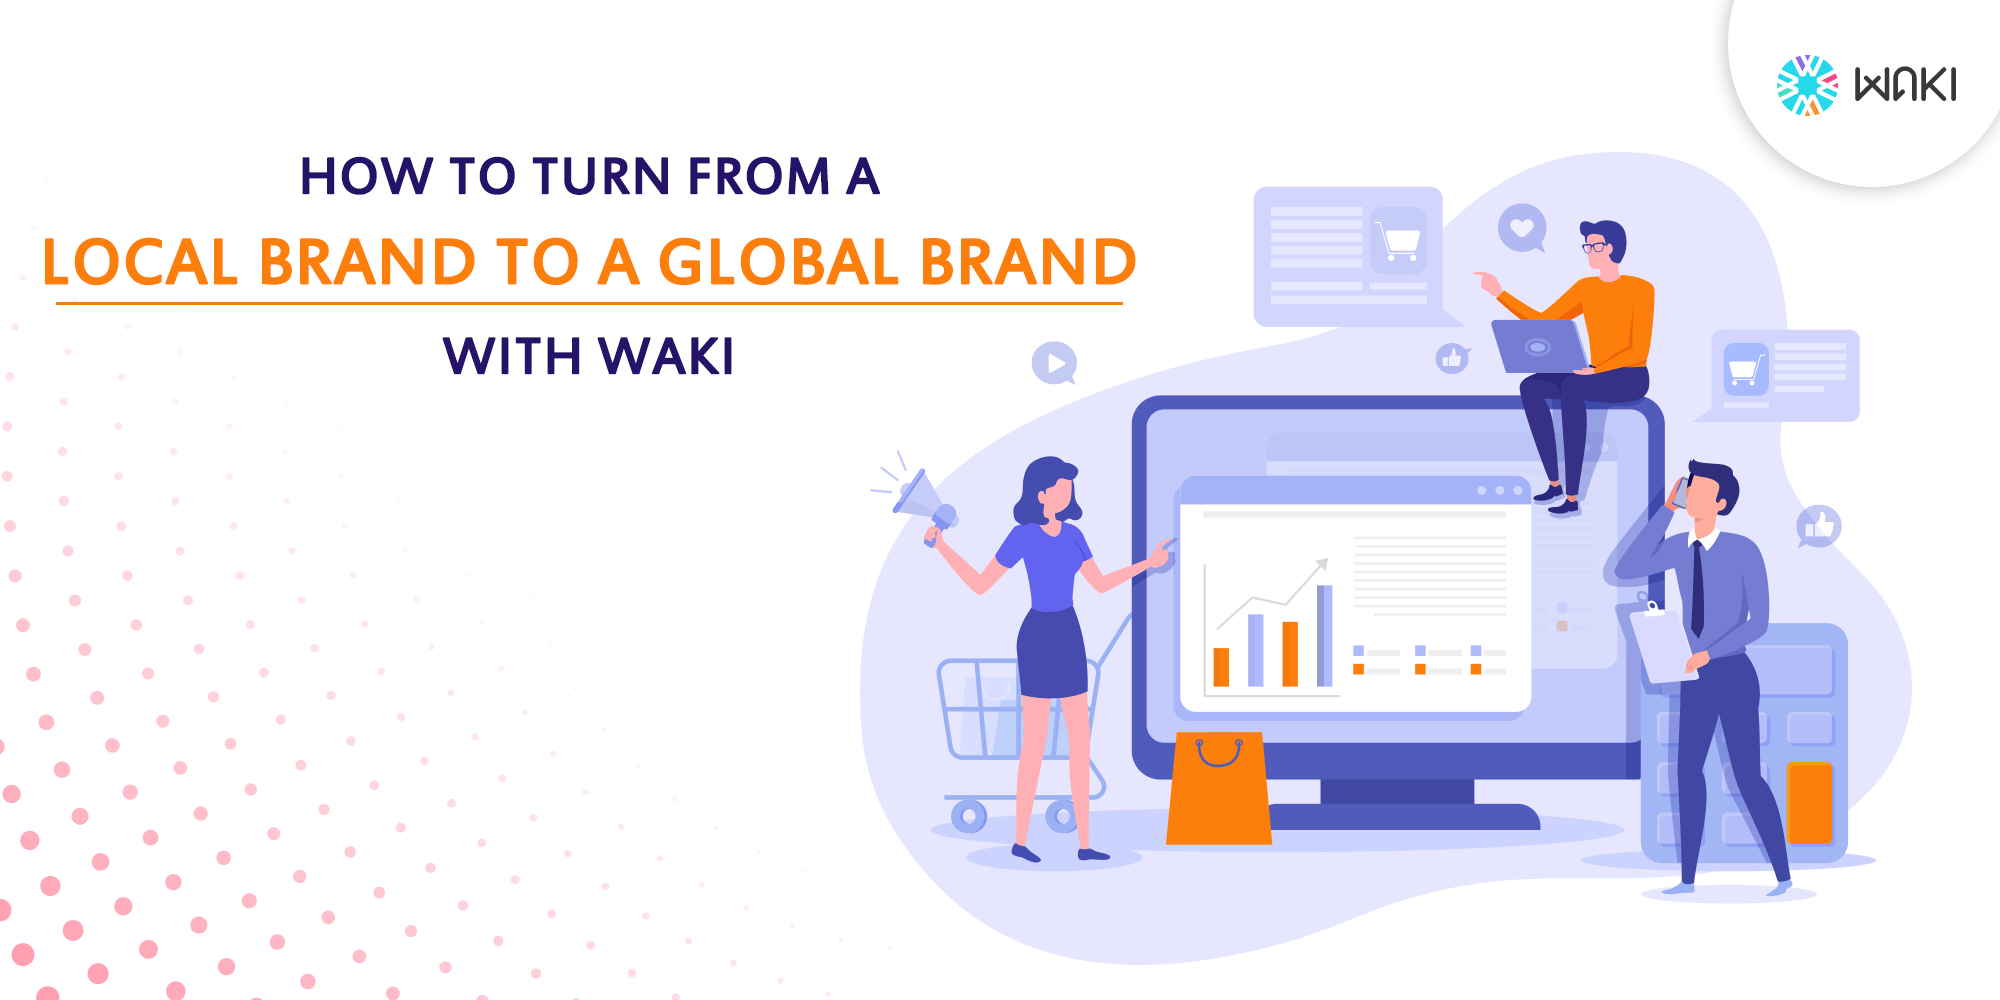 How To Turn From A Local Brand To A Global Brand With Waki